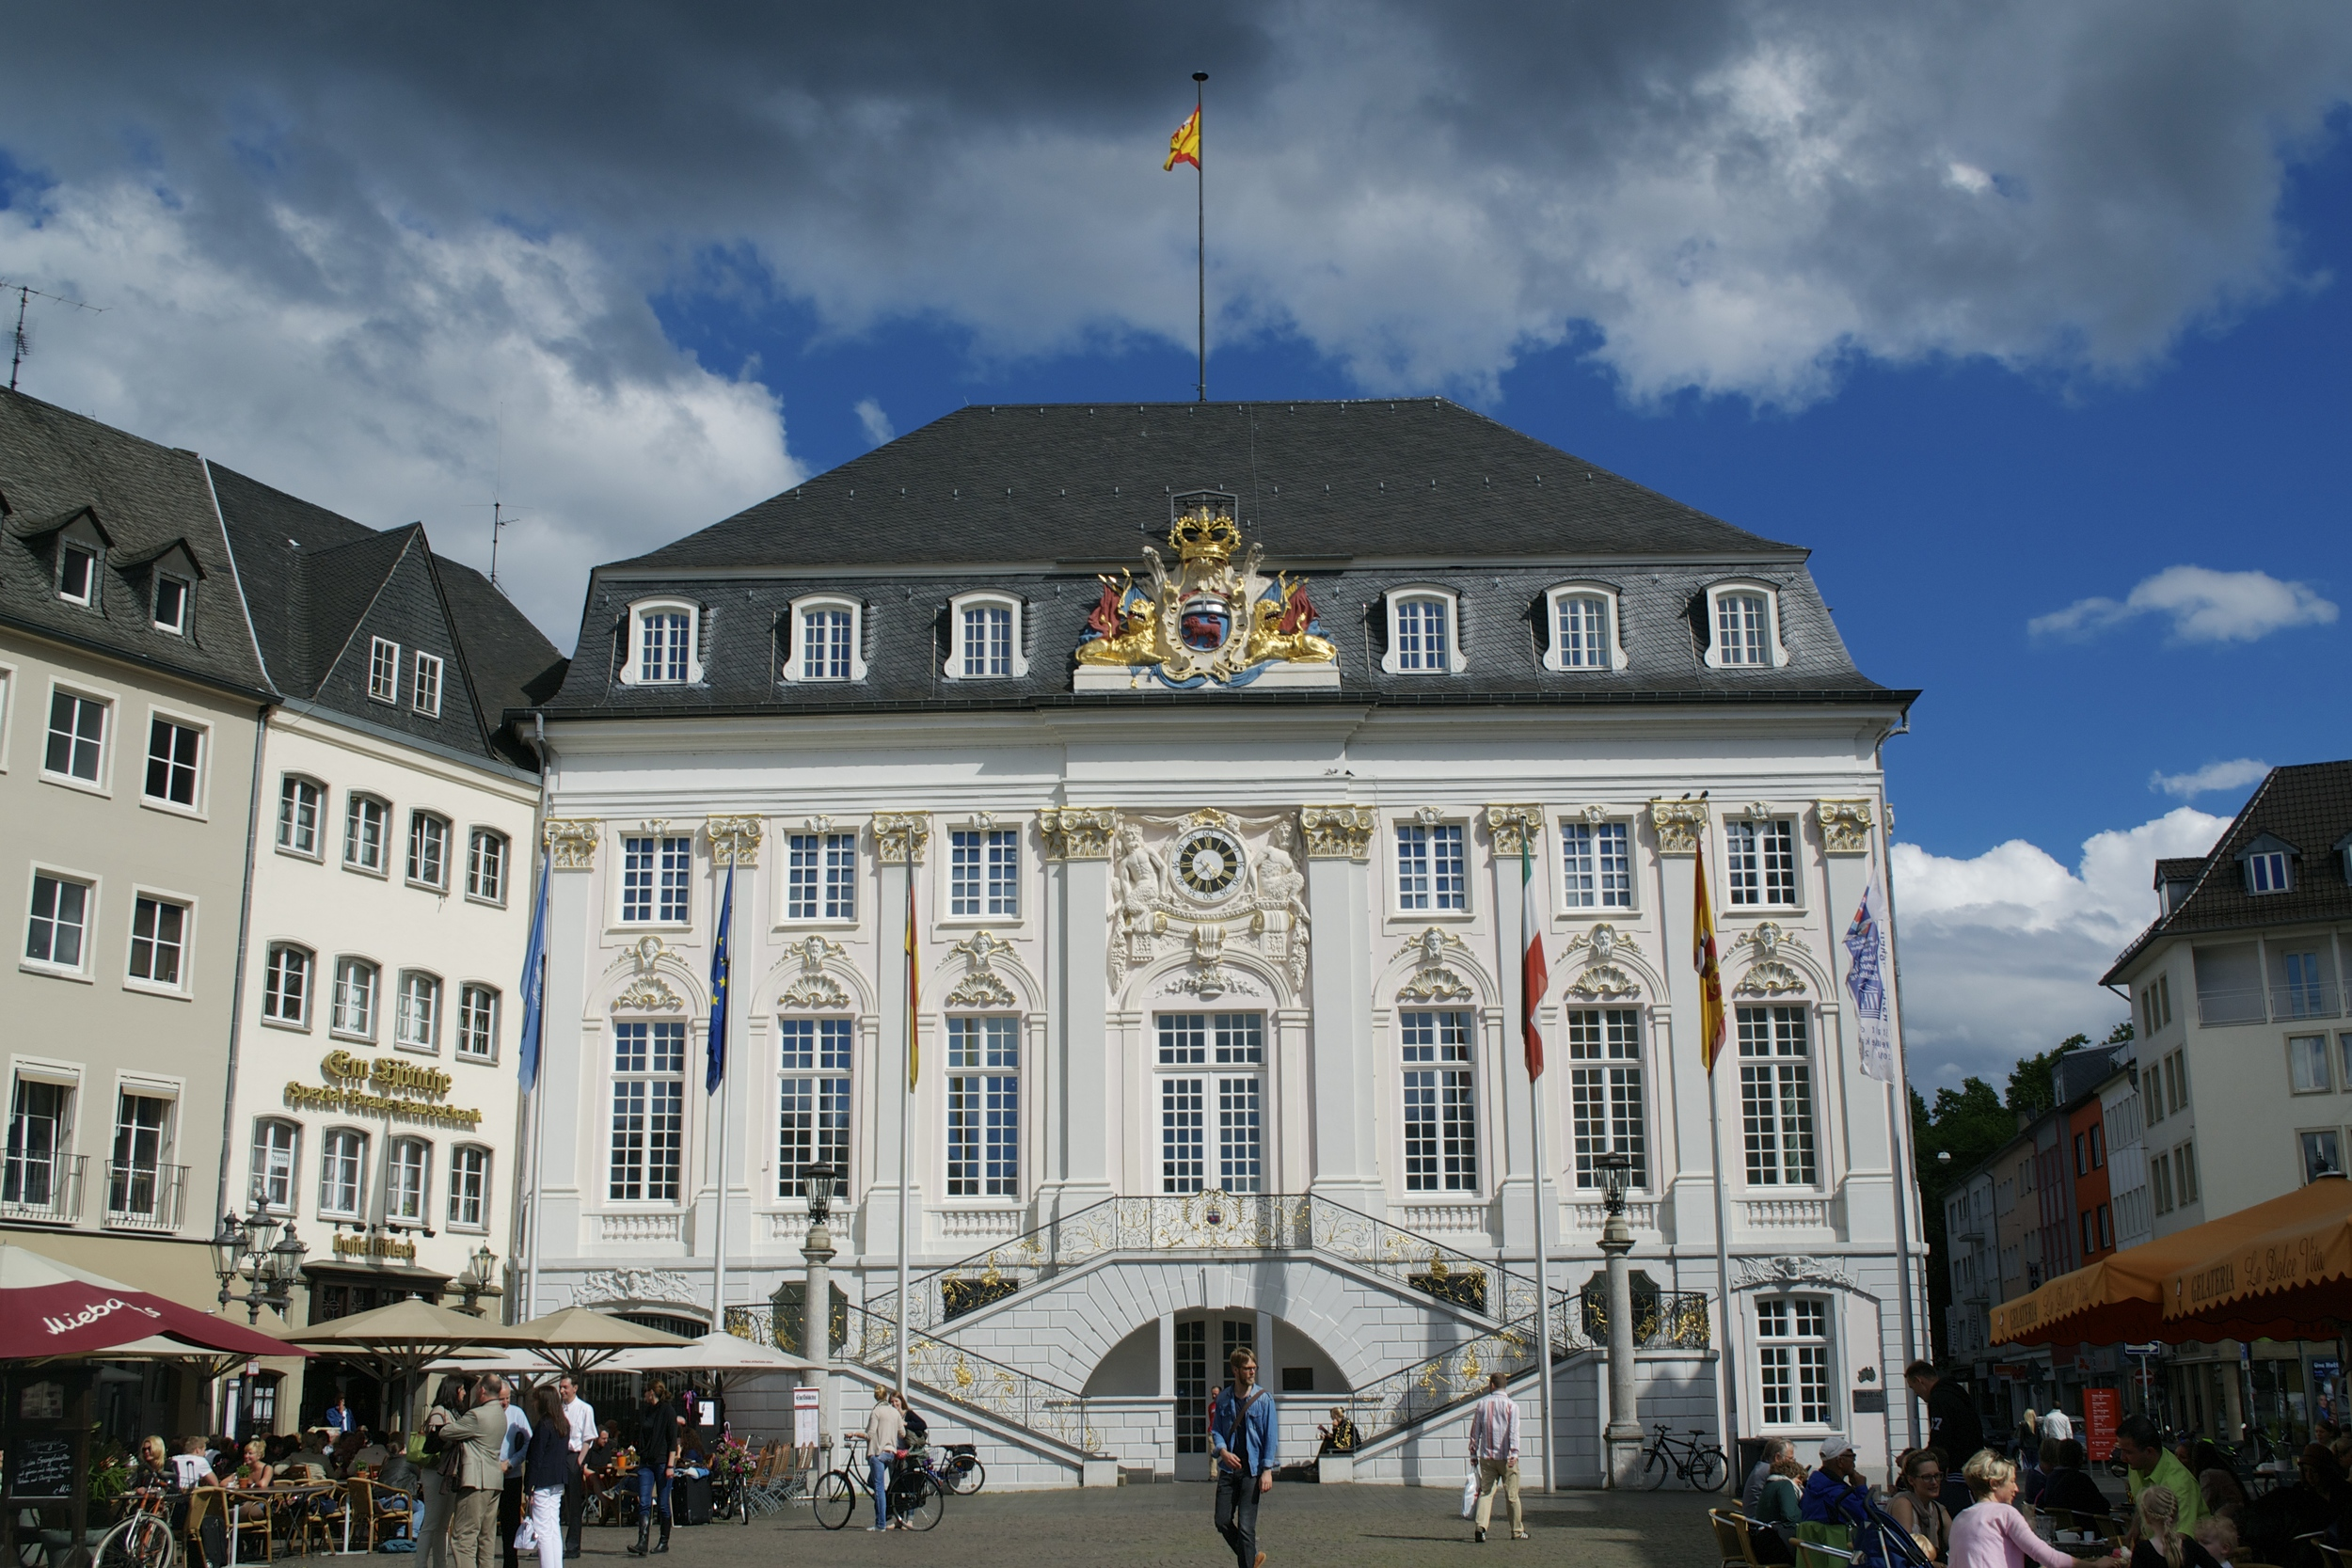 The Bonner Rathaus